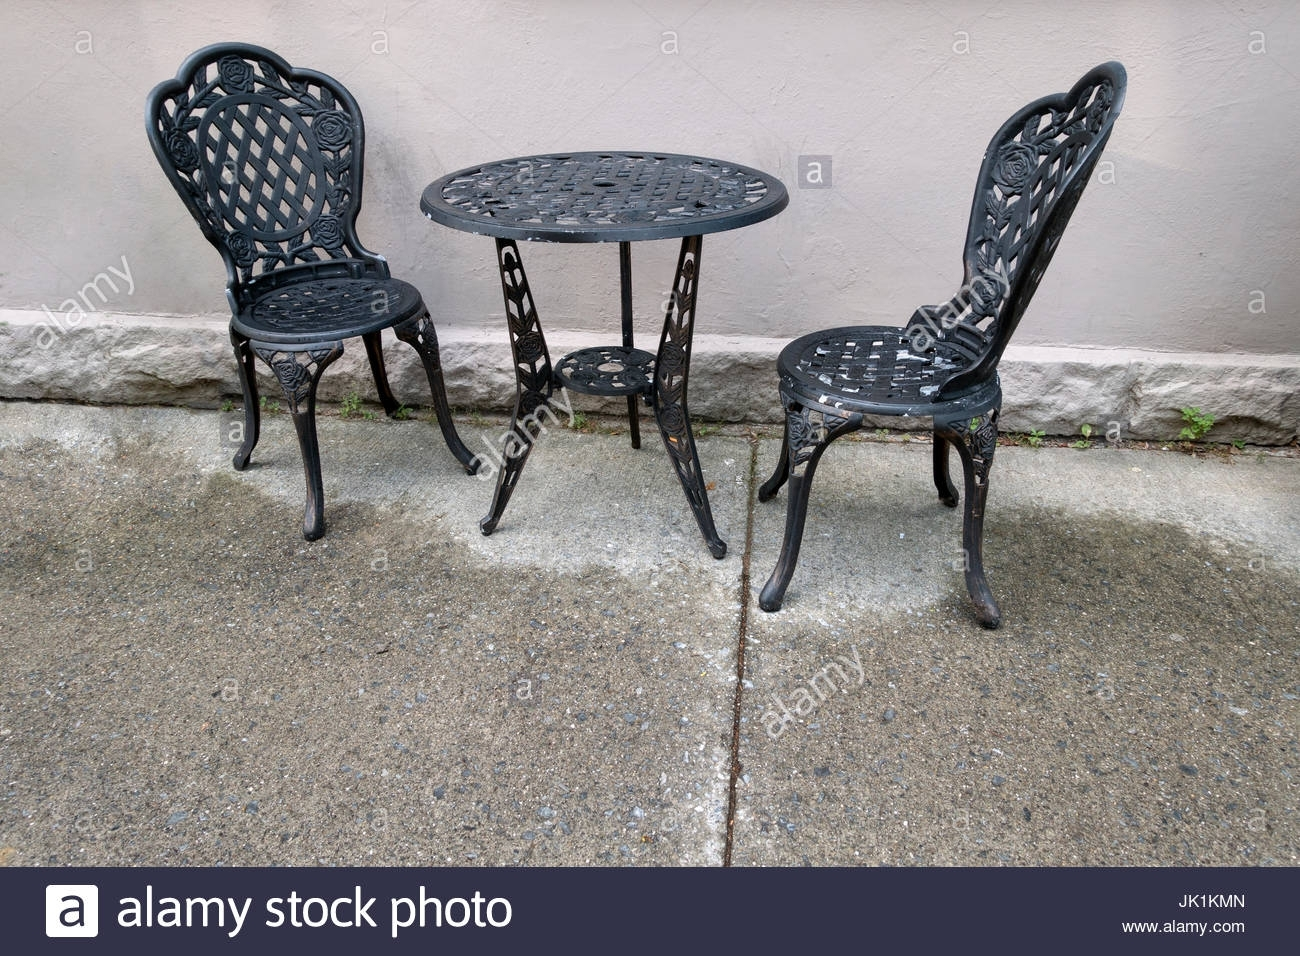 Cast Iron Chairs Stock Photos & Cast Iron Chairs Stock Images – Alamy Throughout Most Up To Date Chapleau Side Chairs (#3 of 20)